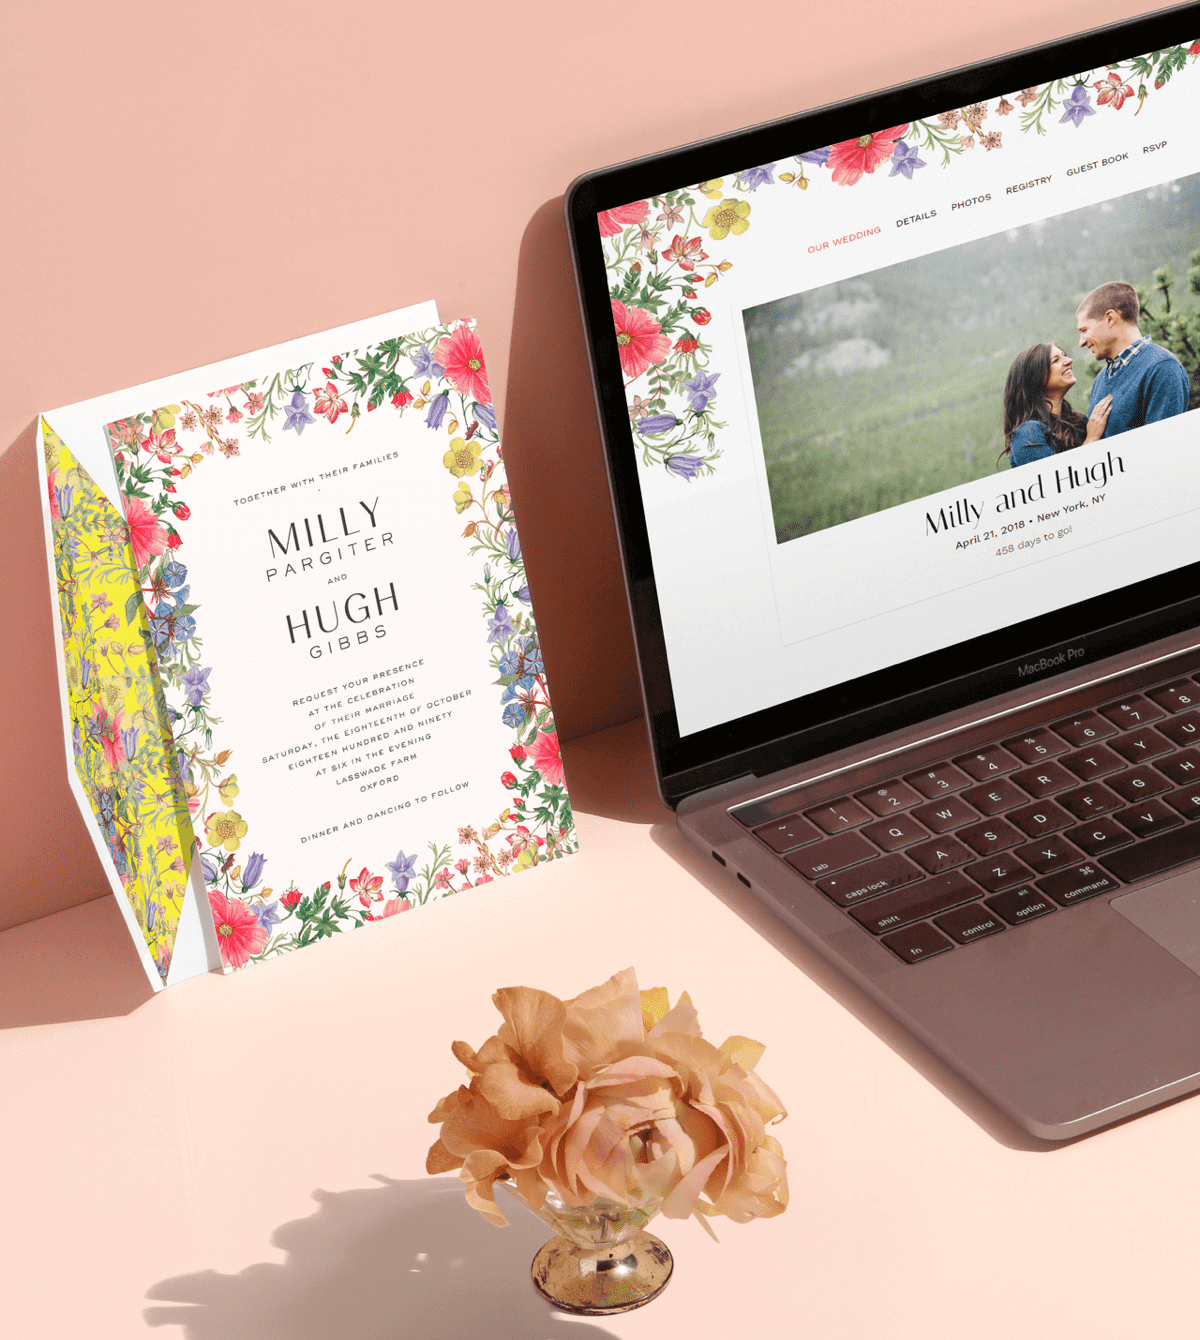 Match your wedding website with your printed wedding invitation